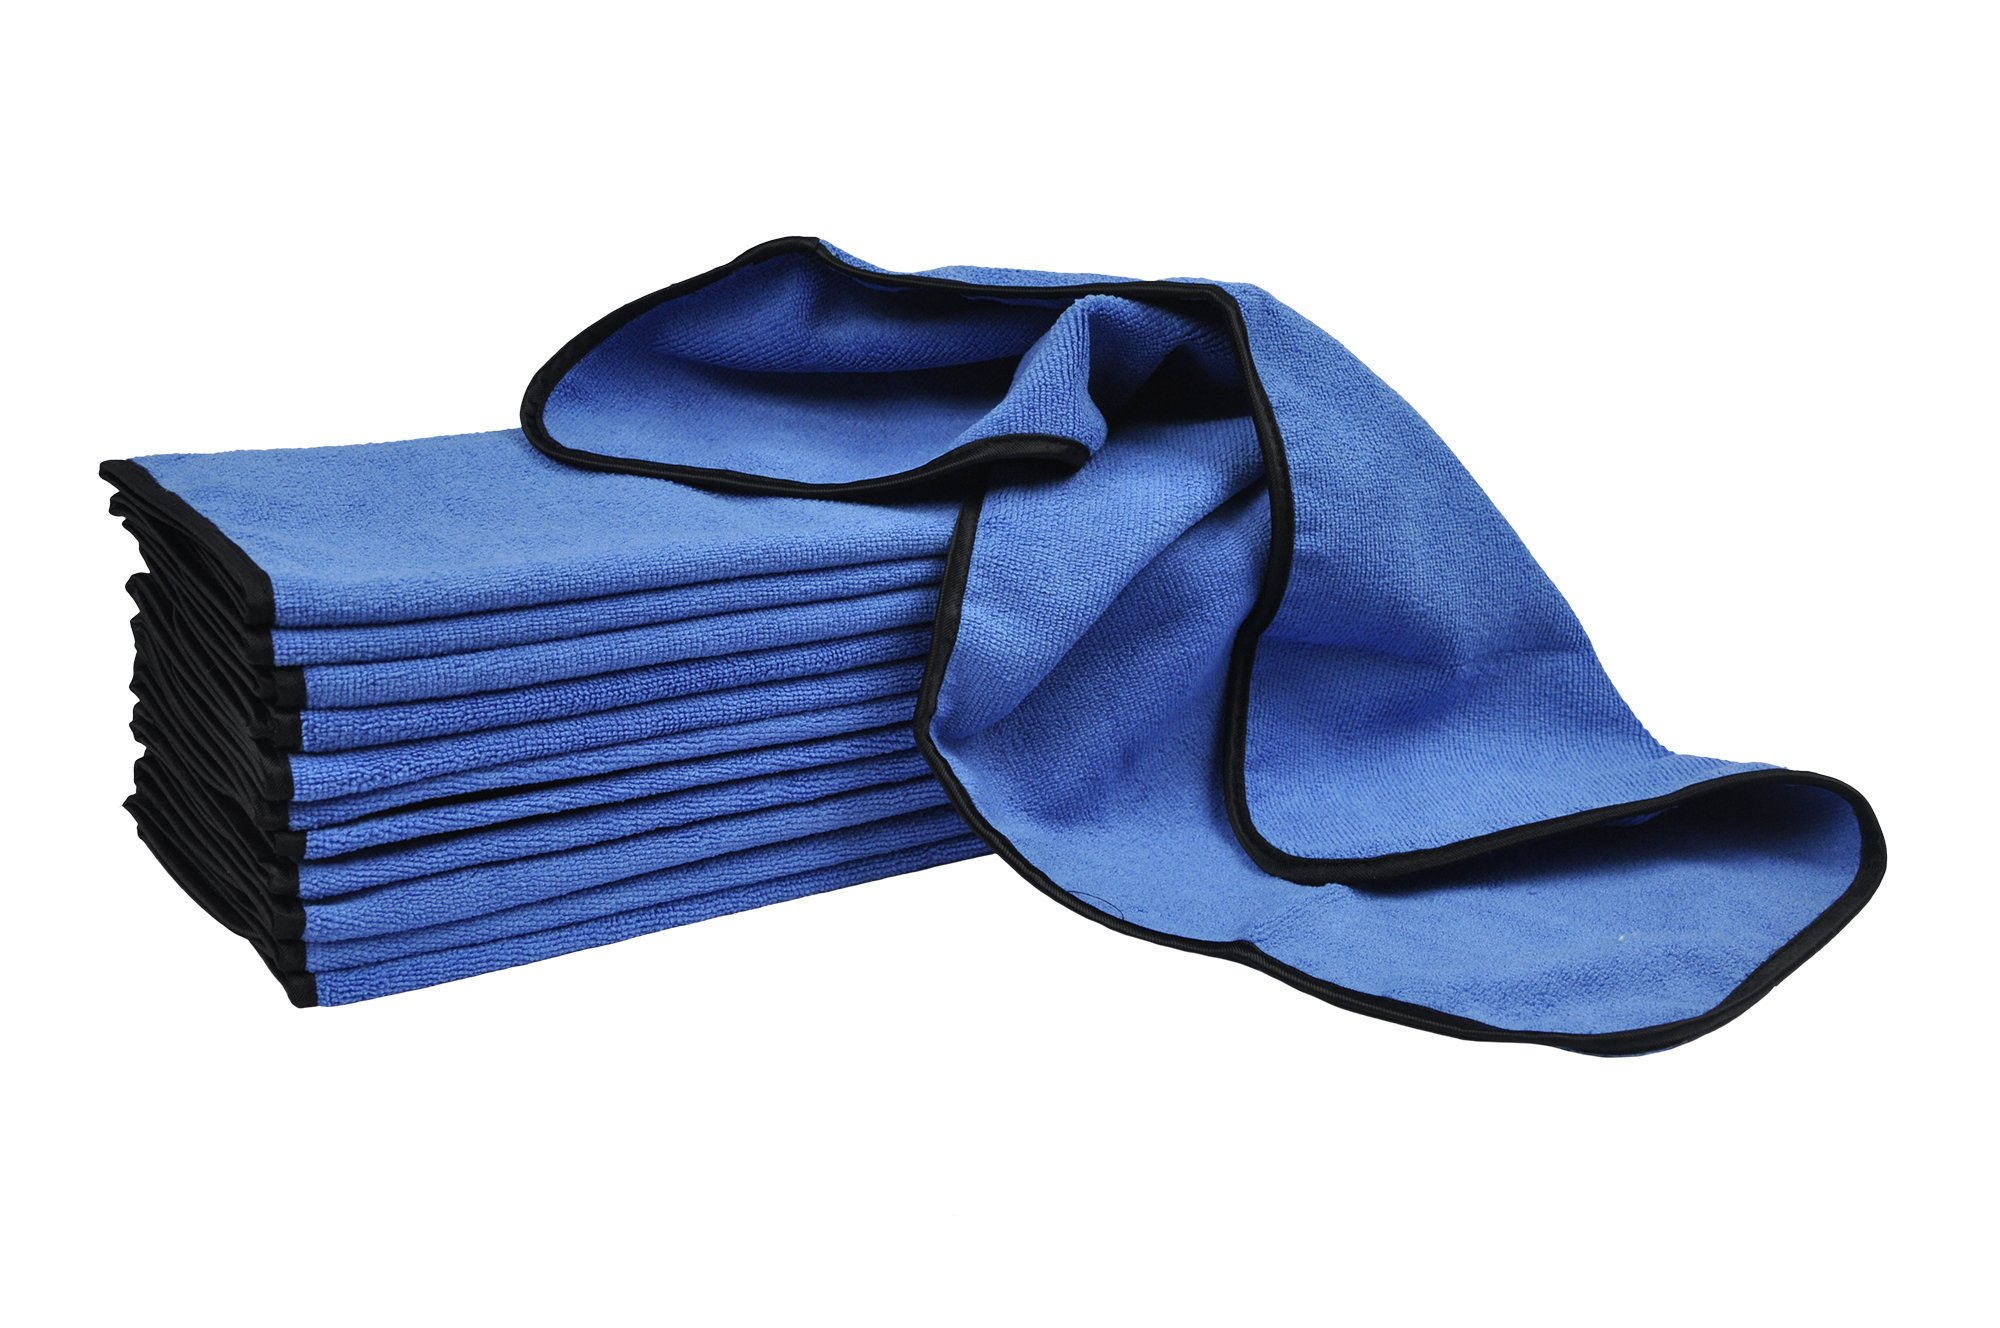 Detailer's Preference Professional Terry Weave Microfiber Towels Rounded Corners Satin Trim 16'' x 24'' 390gsm 12 Pack Blue